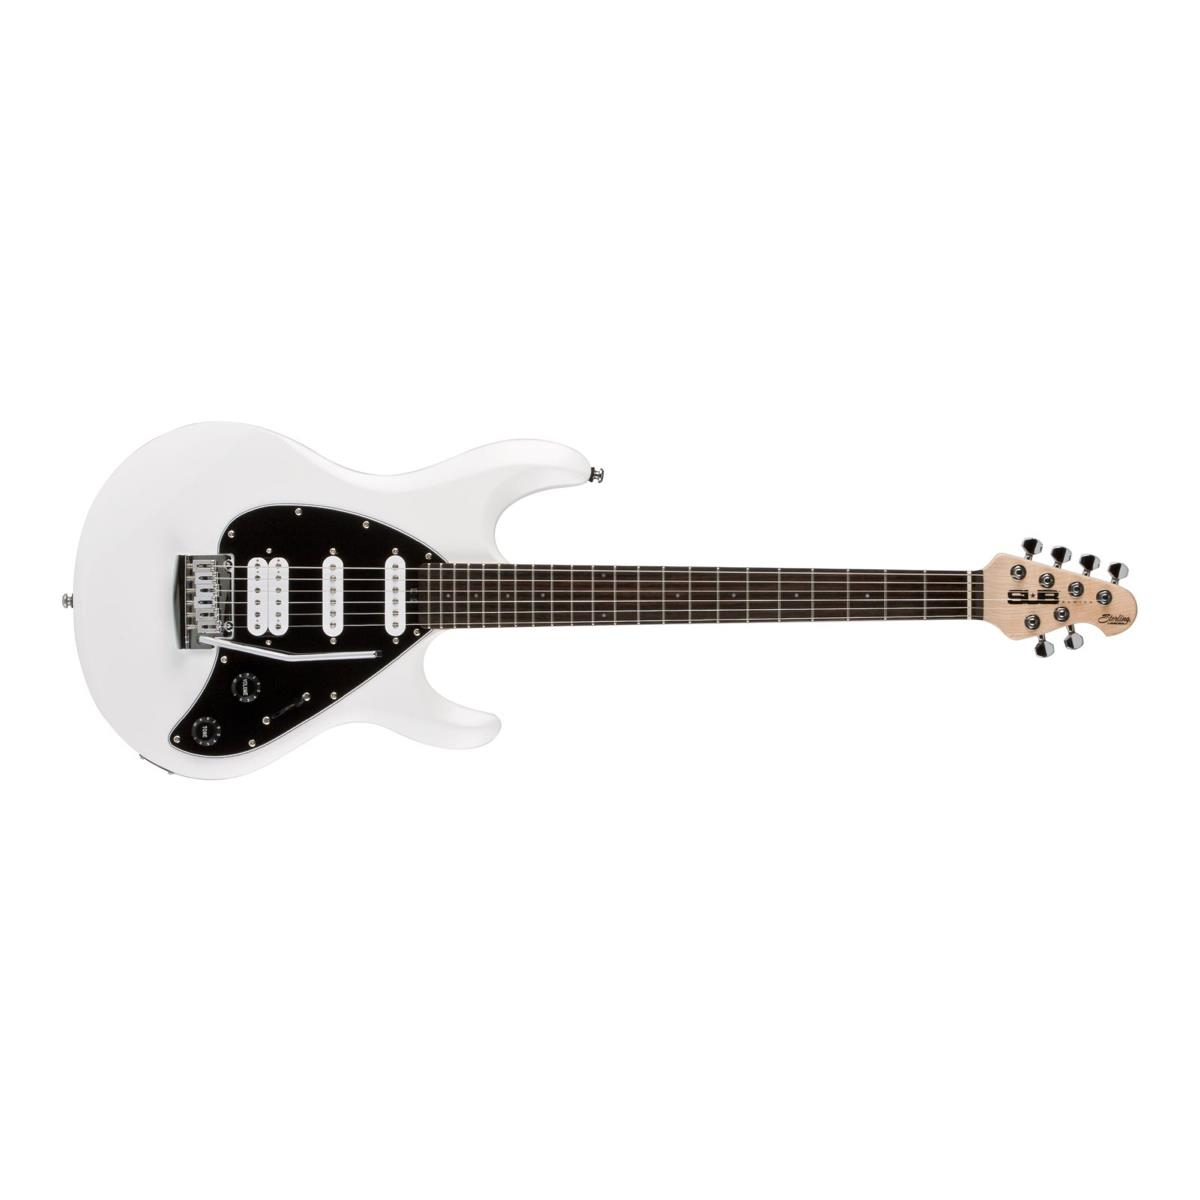 STERLING BY MUSICMAN Silo3-WH - white